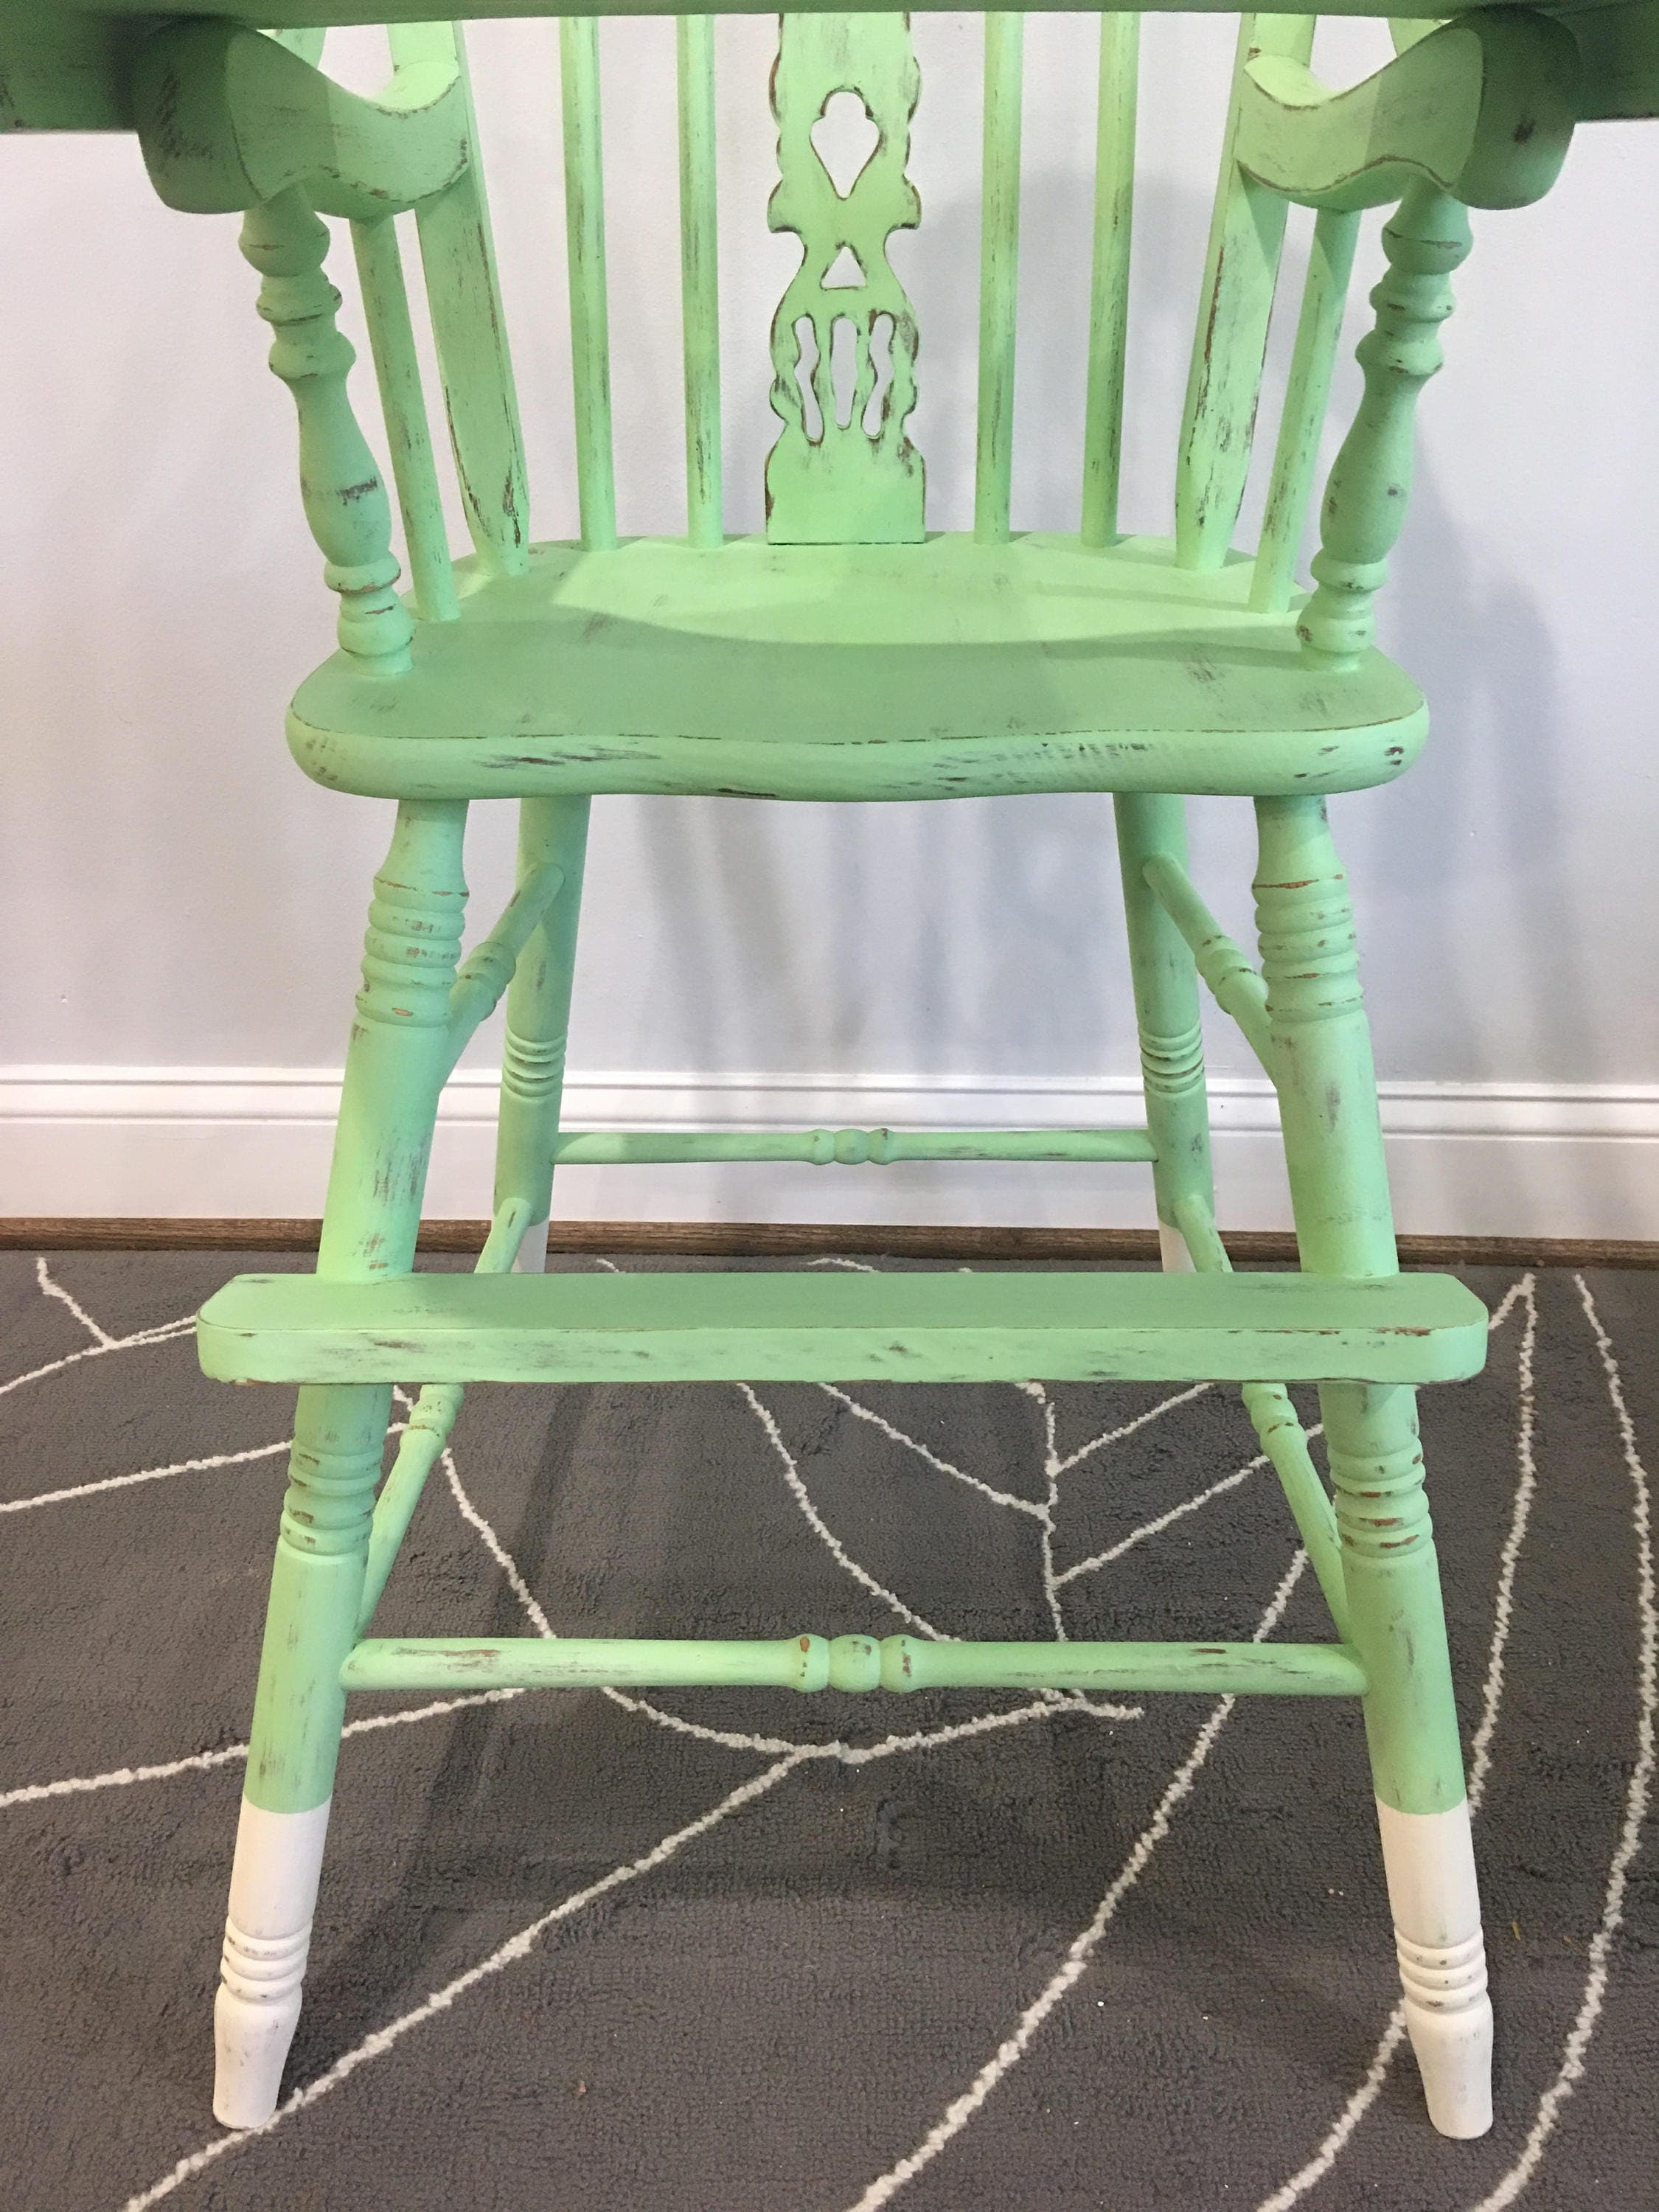 Vintage wooden high chair - Vintage Wooden High Chair